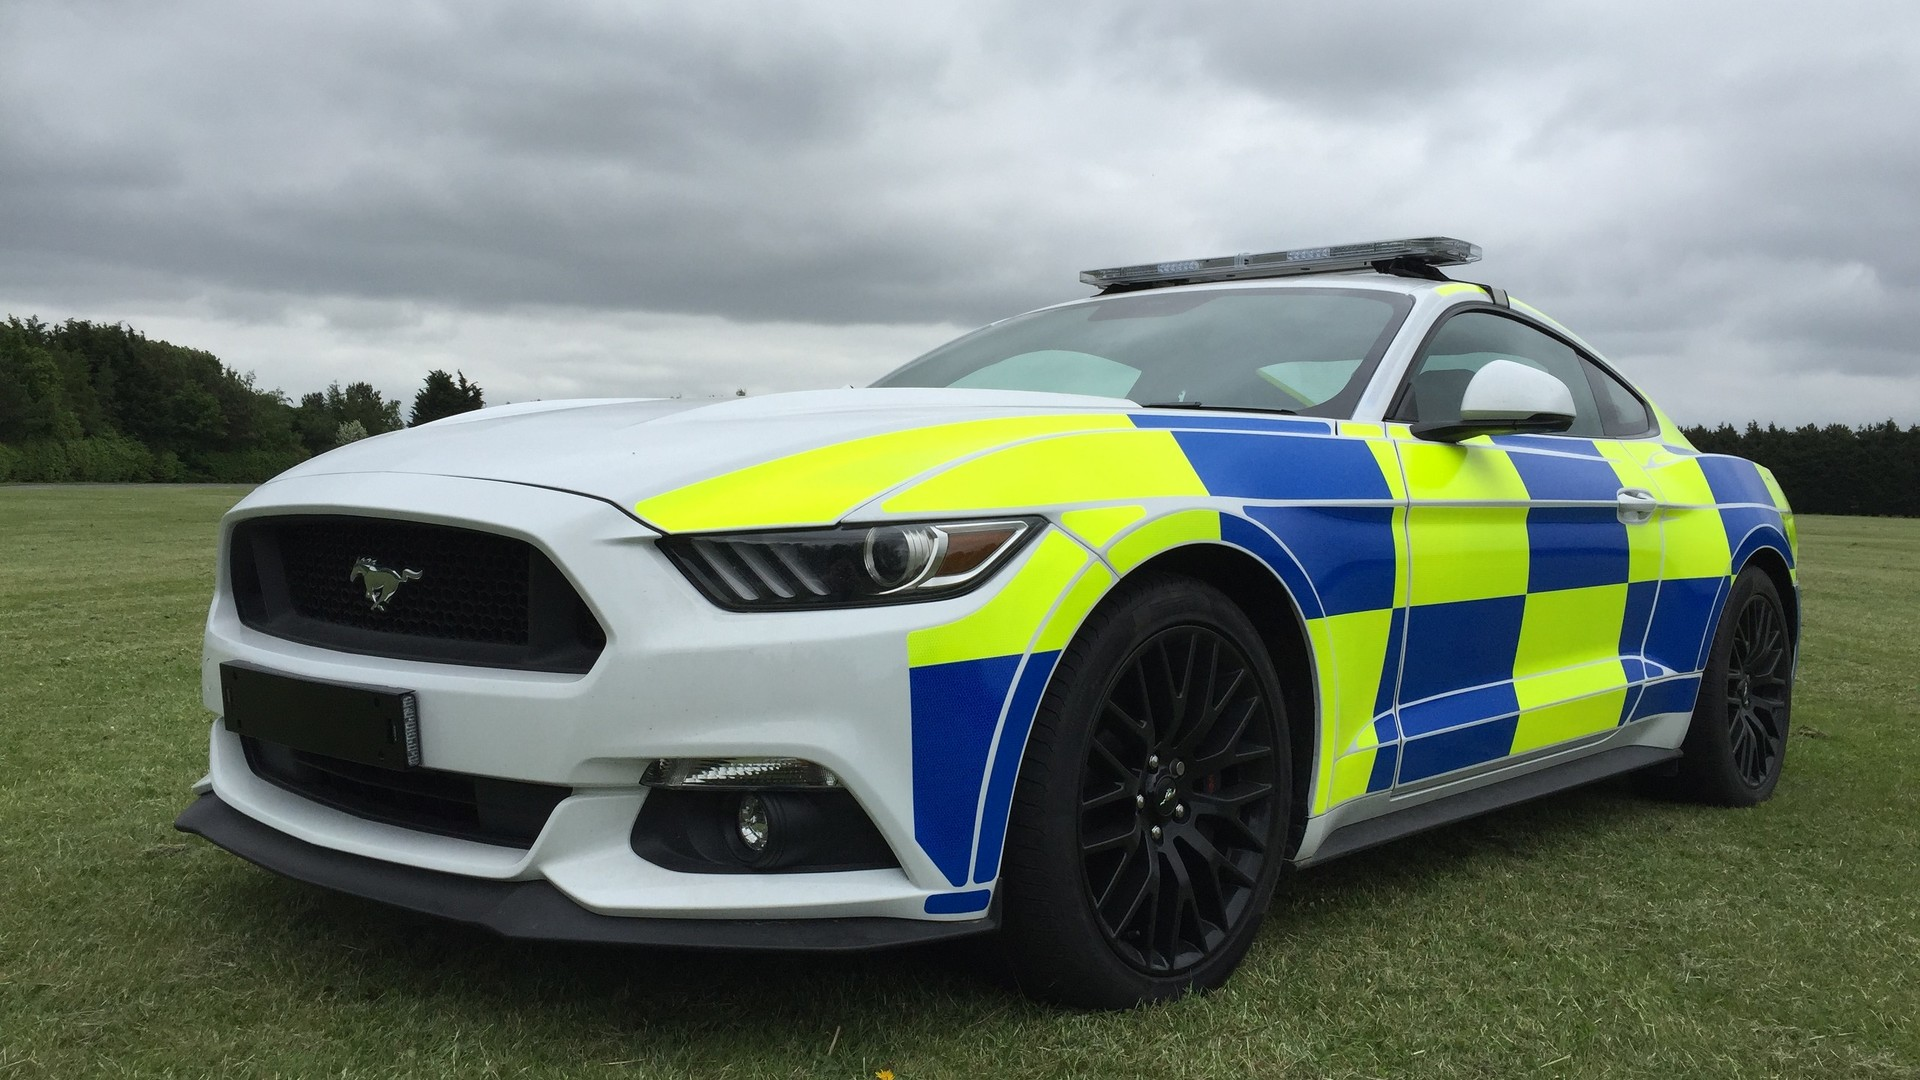 ford mustang uk police car prototype could be crushed. Black Bedroom Furniture Sets. Home Design Ideas